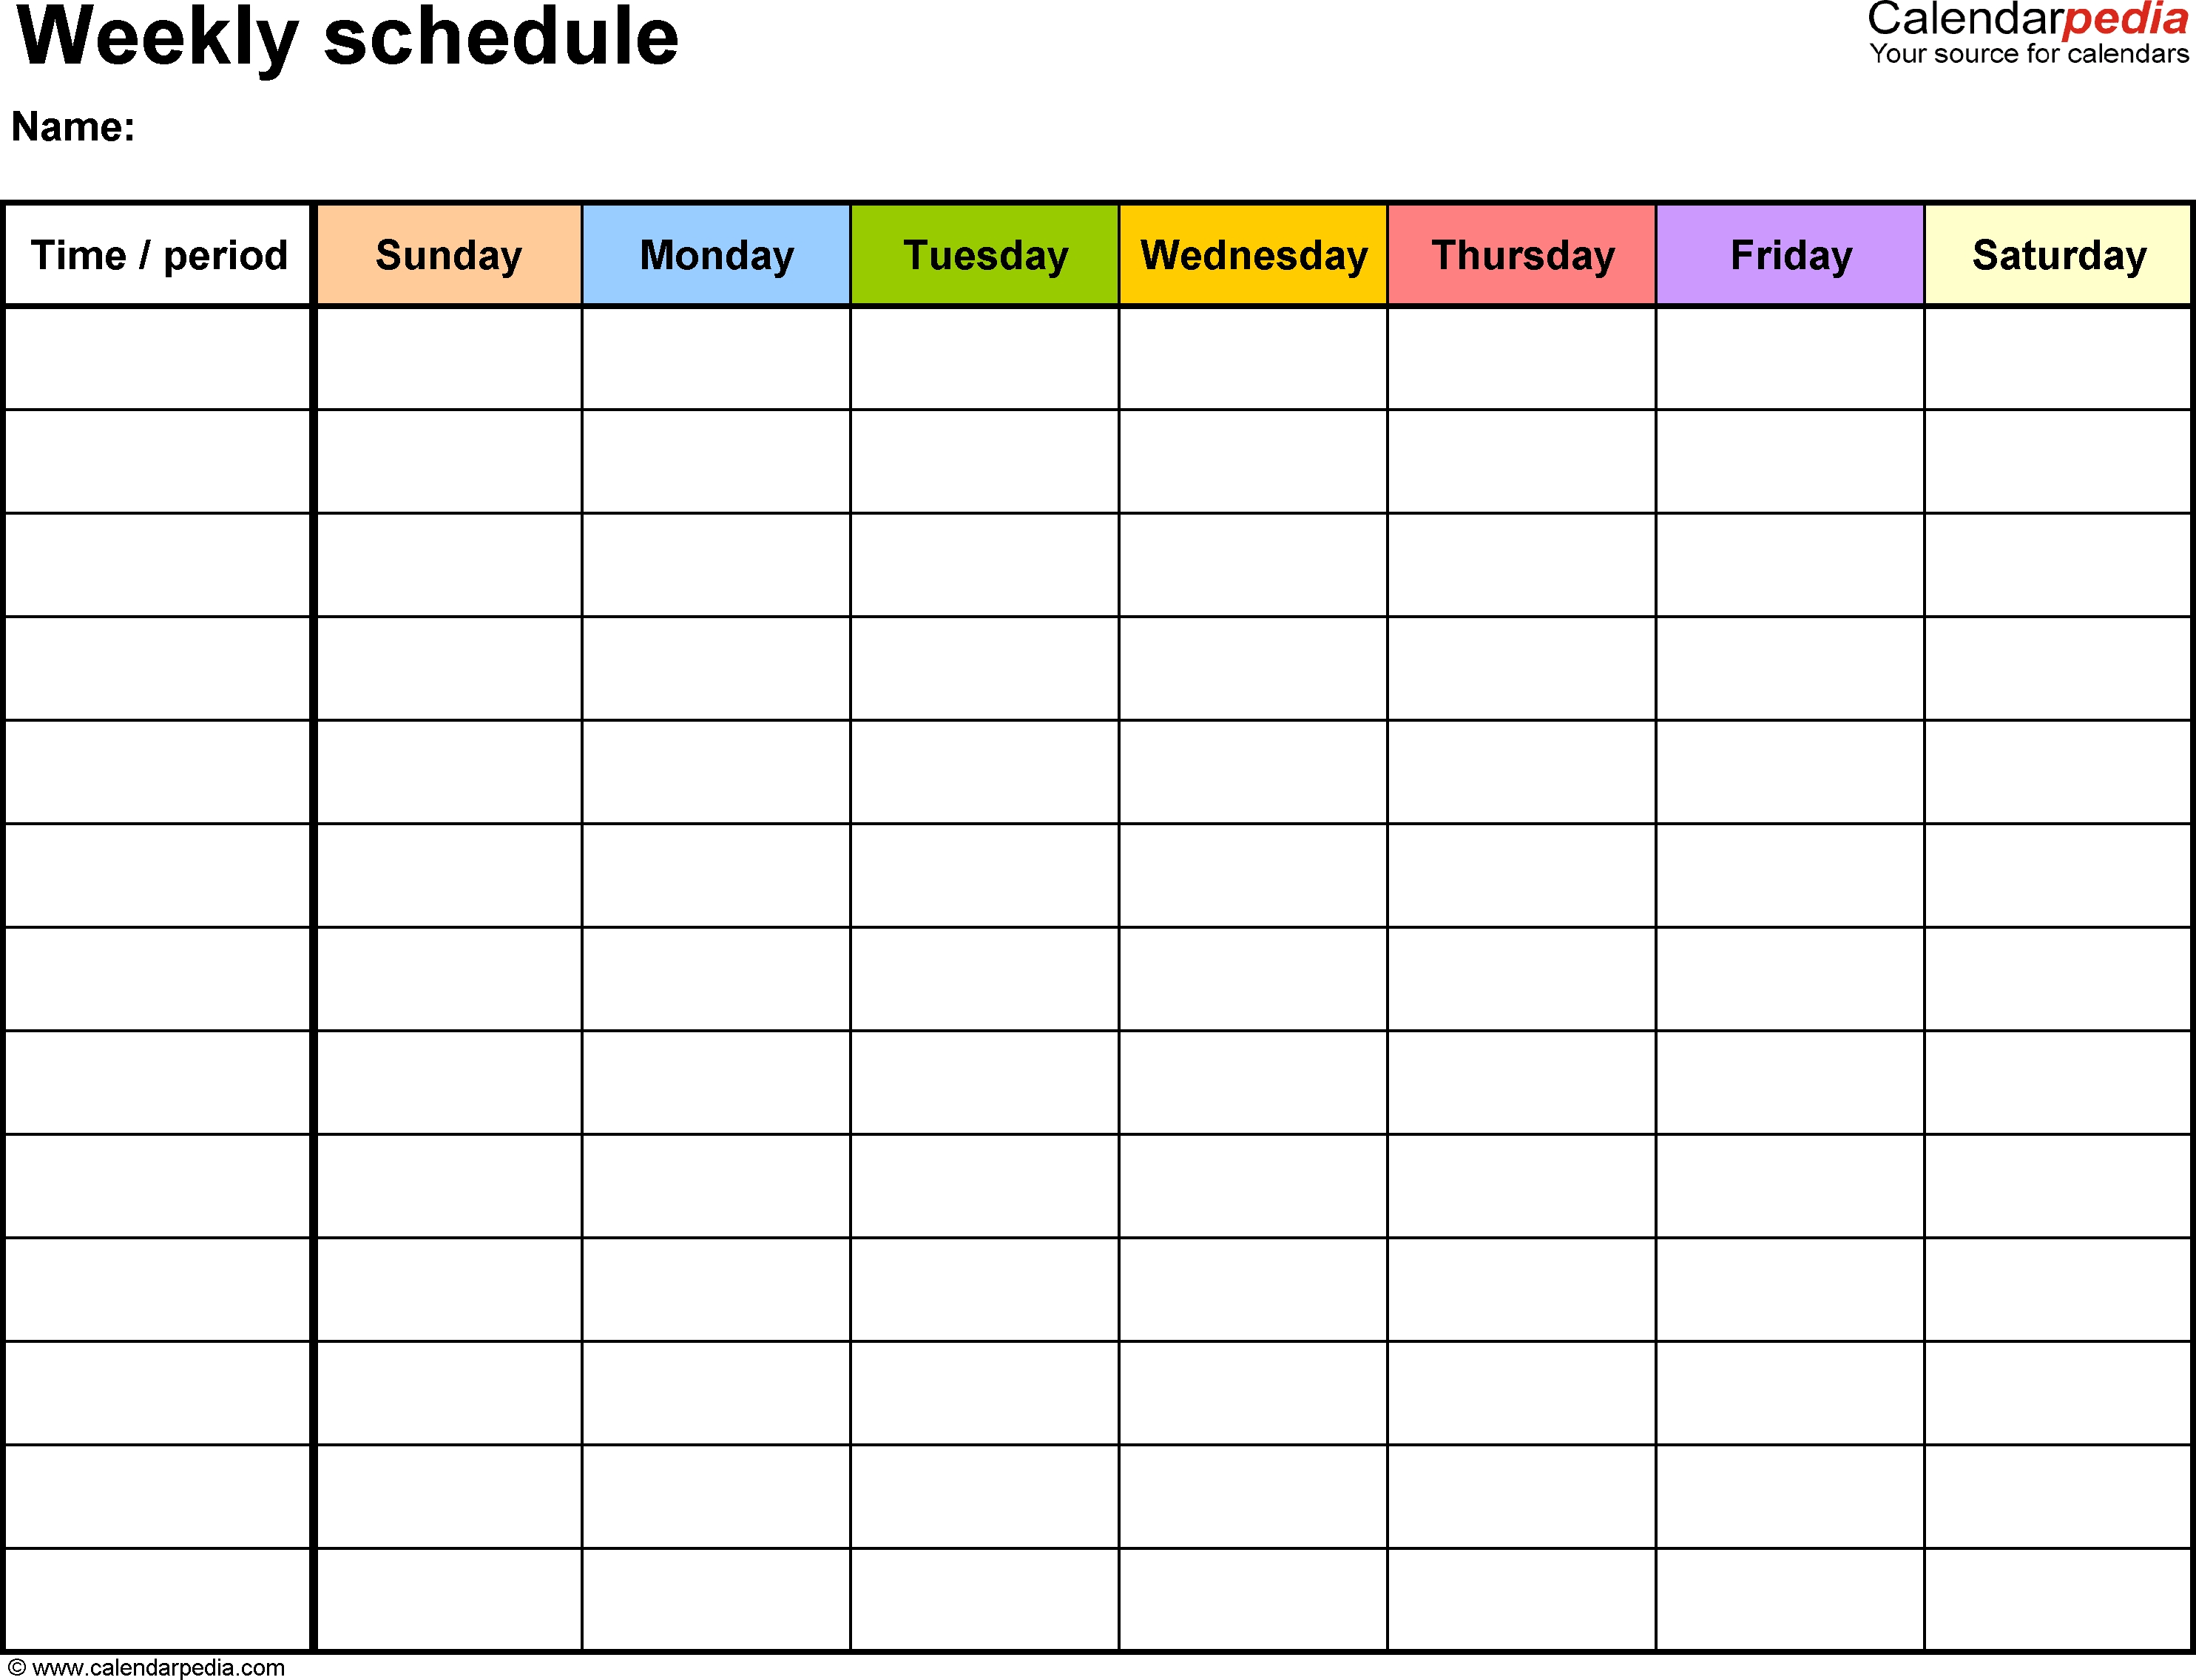 Weekly Calendar With Times Template - Yeniscale.co  Weekly Calendar Template With Times